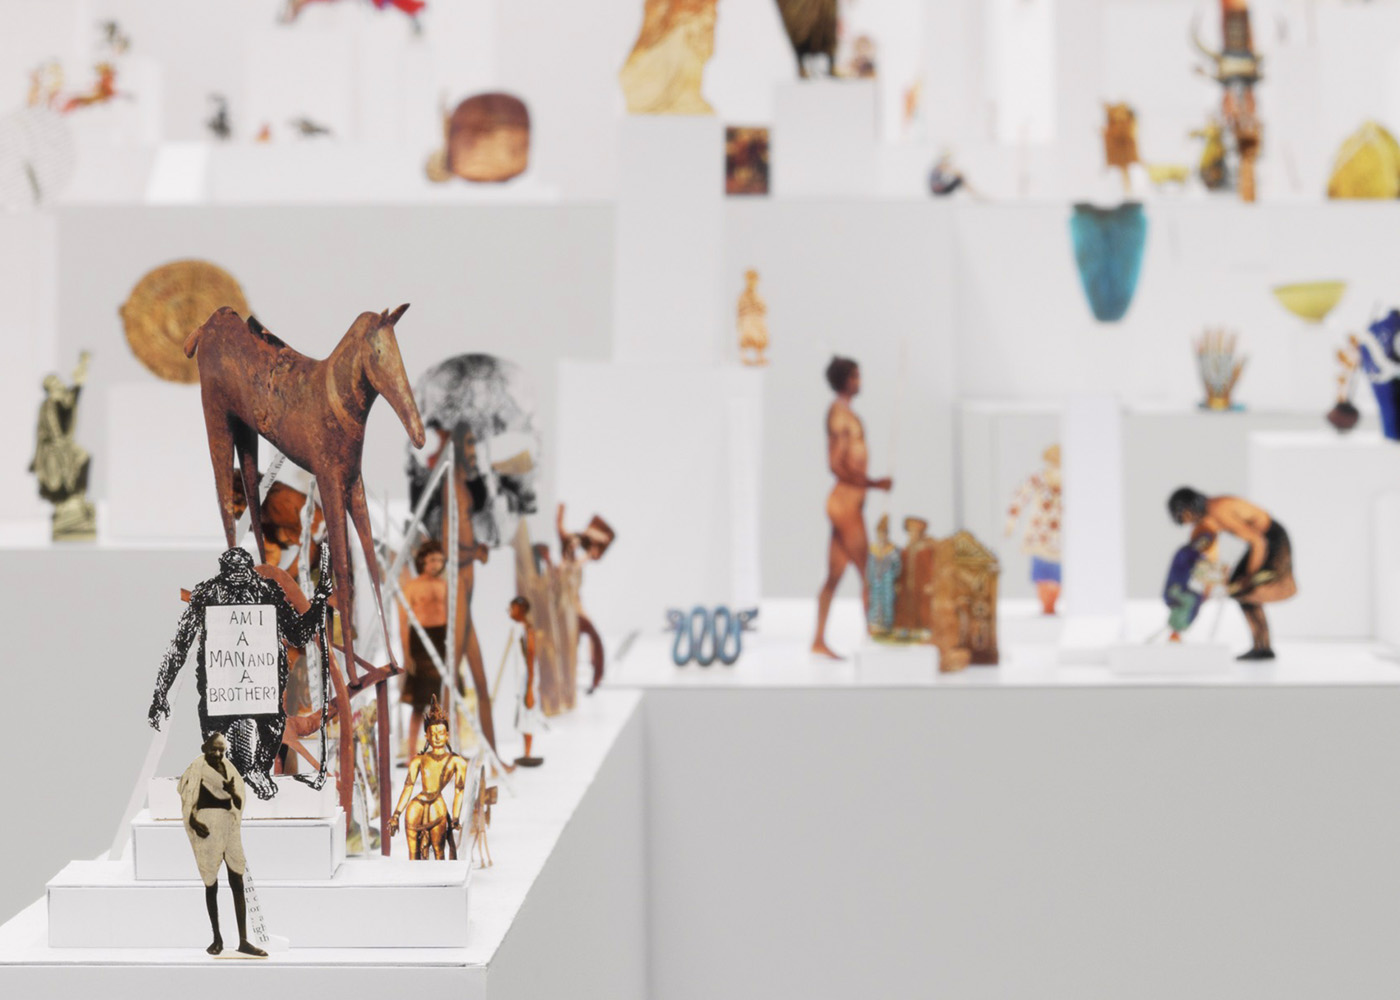 Geoffrey Farmer: The Last Two Million Years, 2007, exhibition copy, 2015 paper cut-outs from selected pages of The Last Two Million Years (foamcore plinths, Plexiglas frames, marble, incense).